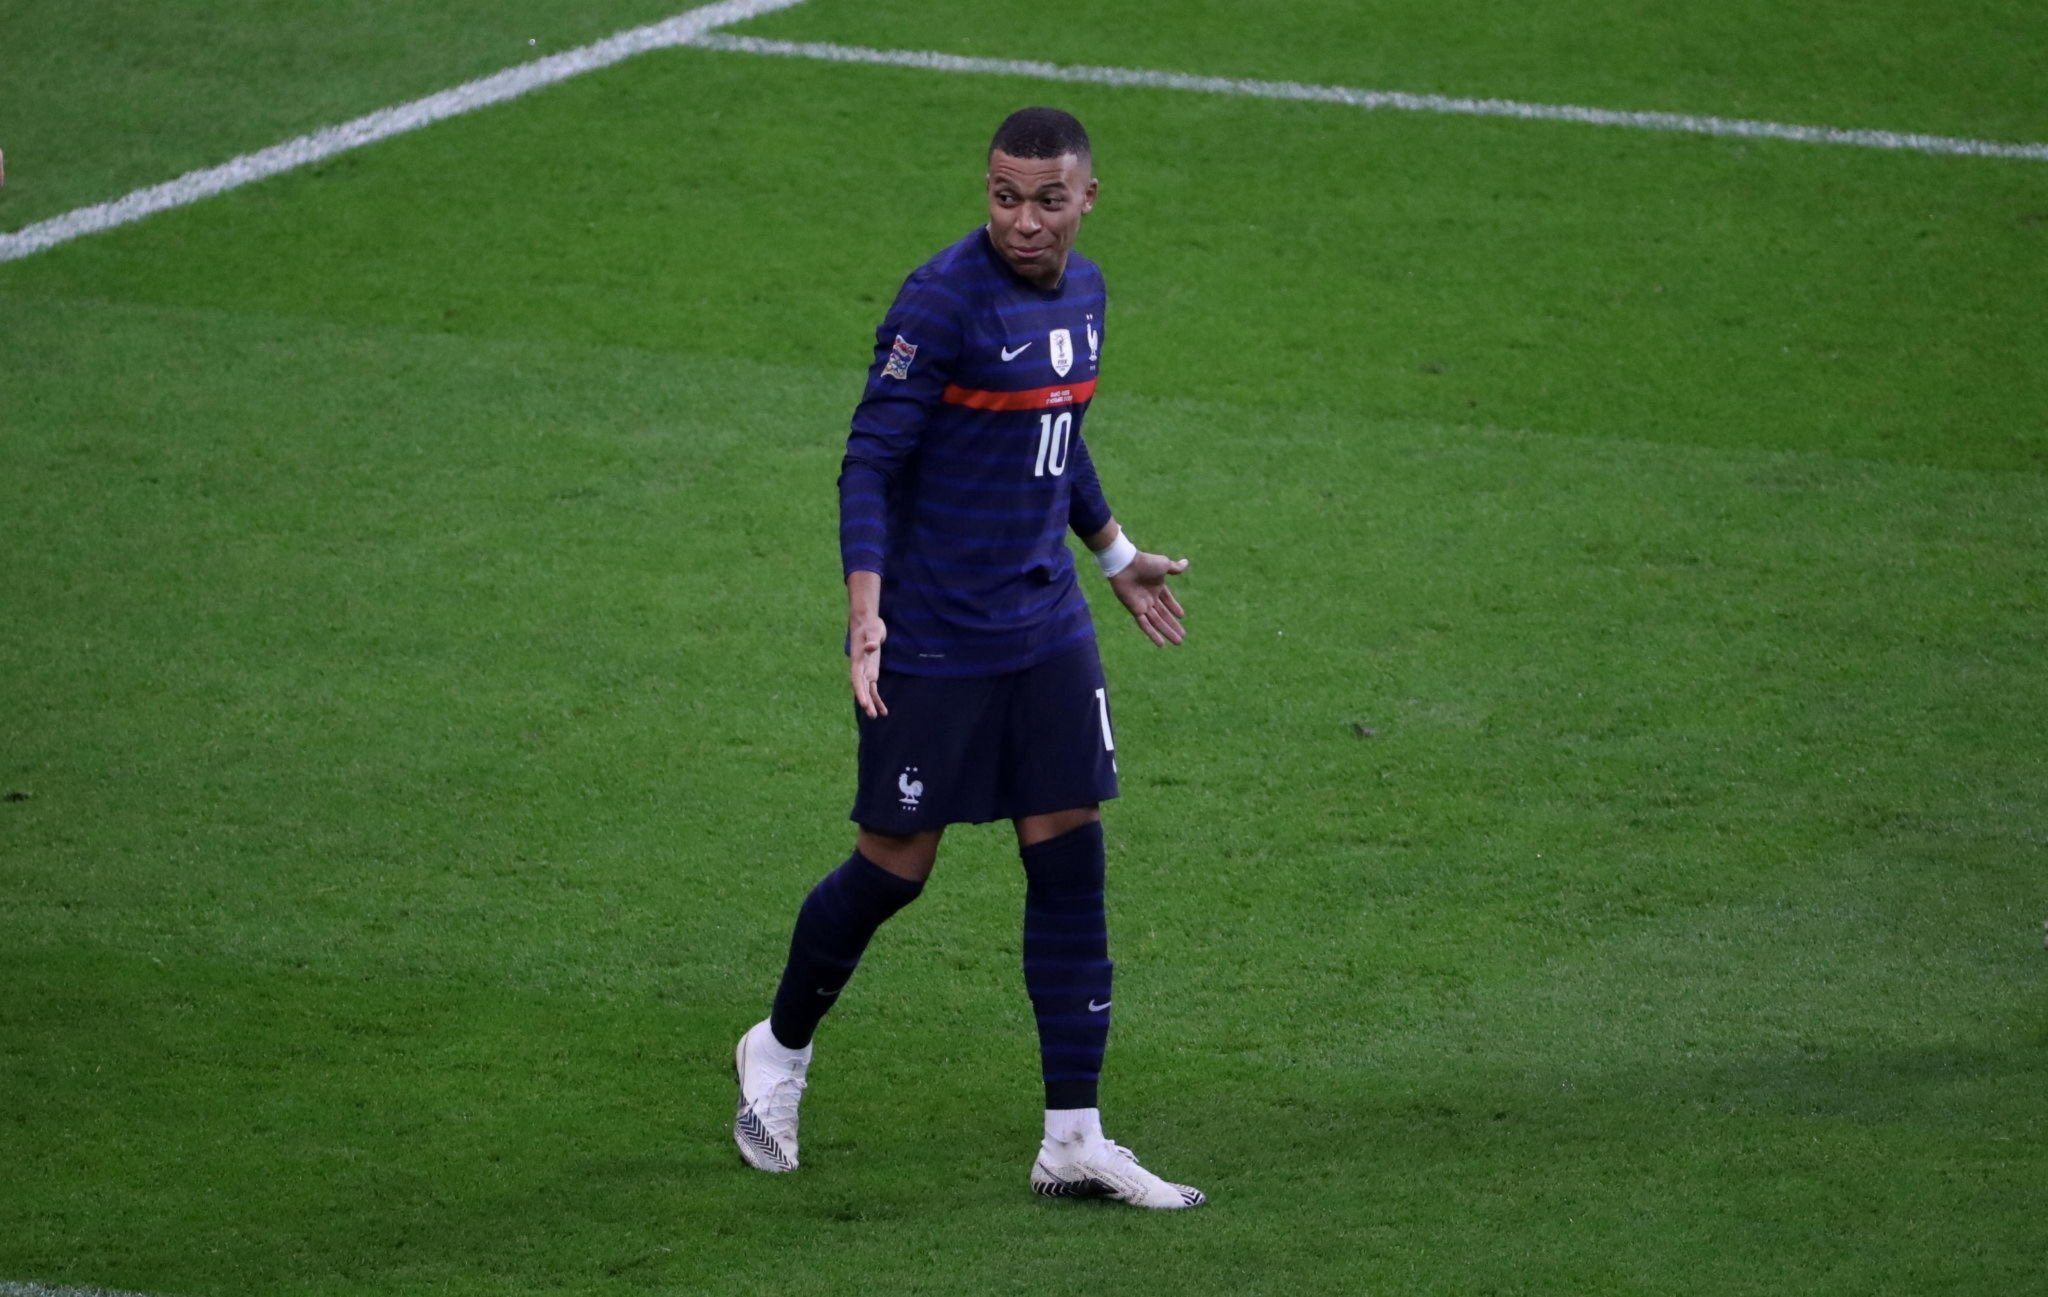 France Euro 2020 squad preview